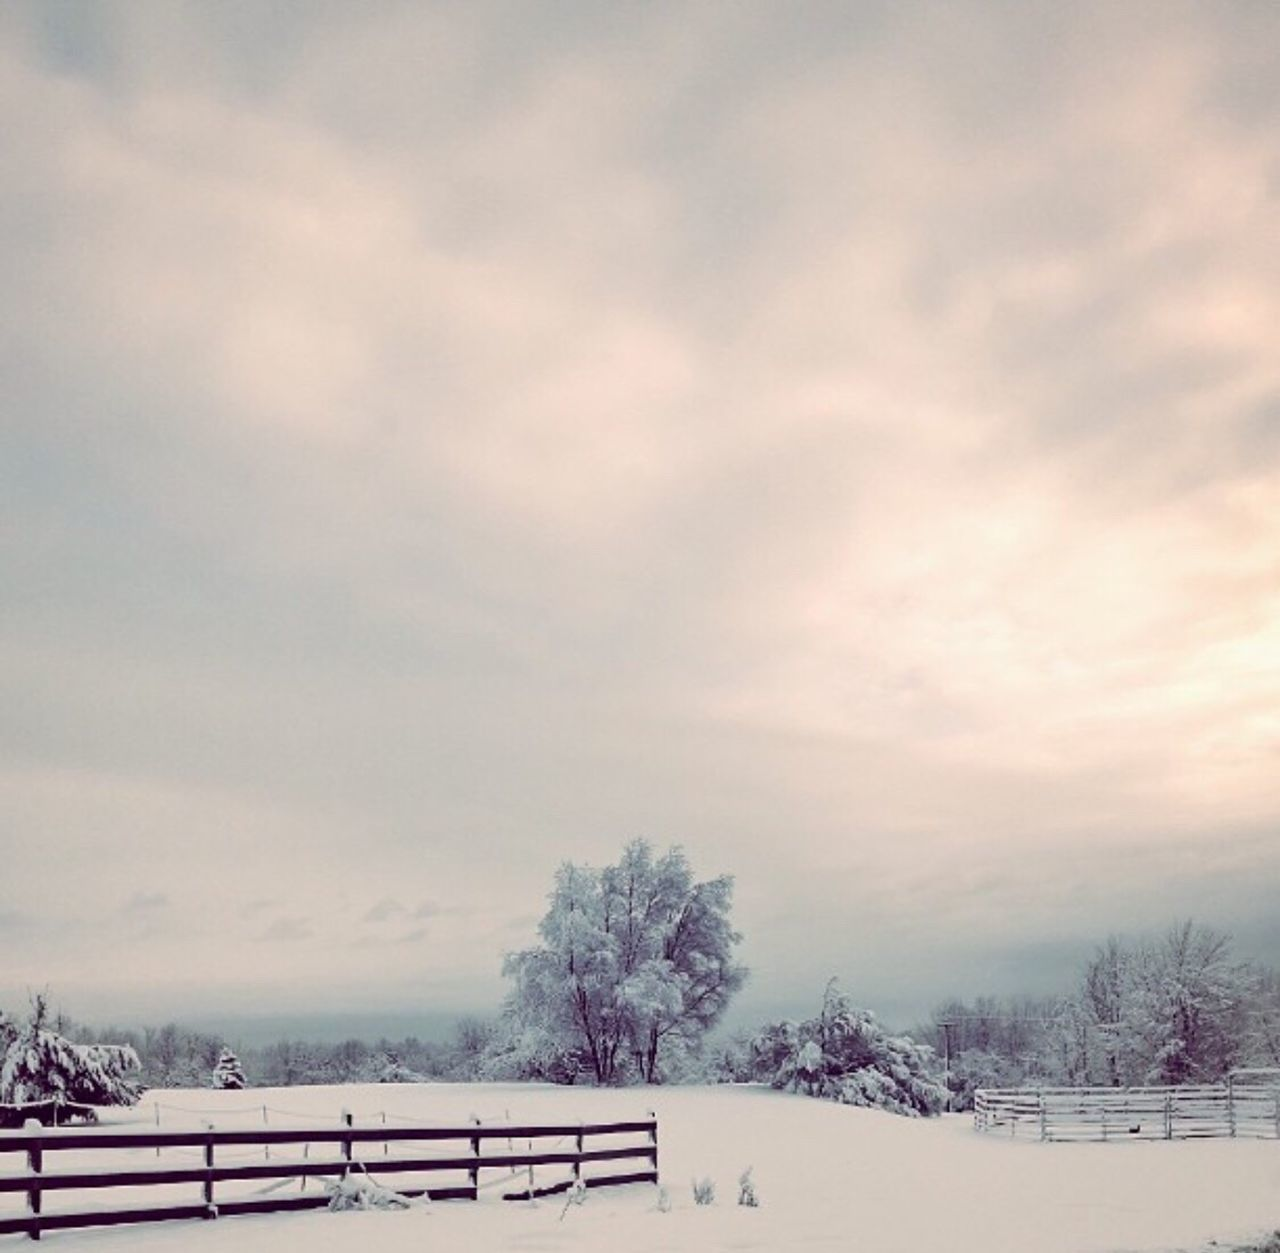 #Upstate Ny Winter #Winter #bryerpatchphotography Snow Cold Temperature Winter Weather Nature Bare Tree Tree Beauty In Nature Sky Cloud - Sky Outdoors Tranquility No People Scenics Day Landscape